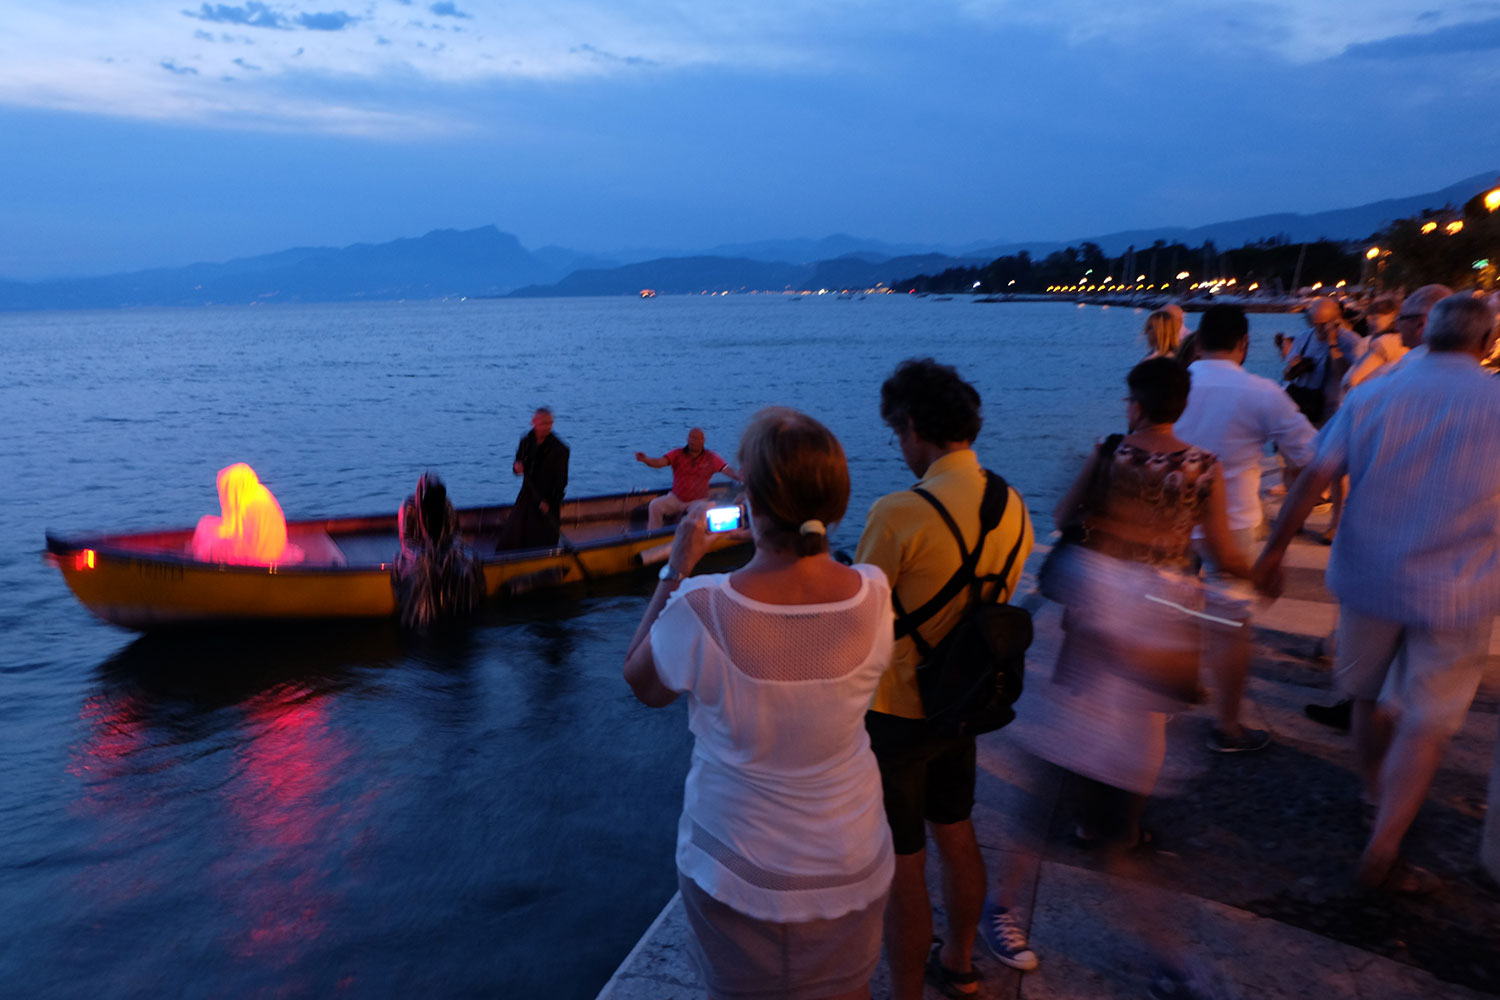 lazise-largo-de-guarda-italia--kouba-designkooperative-austria-guardians-of-time-manfred-kili-kielnhofer-contemporary-art-design-arts-arte-sculpture-theater-foto-film-performnce-avalon-ferryman-3845